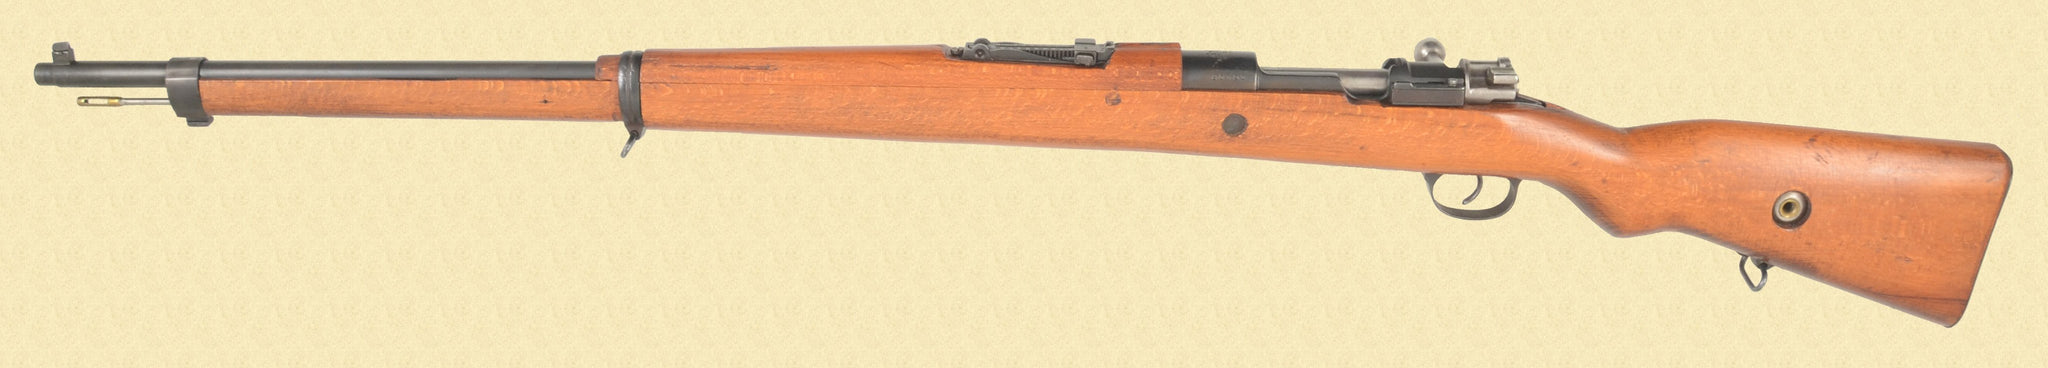 MAUSER T-38 TURKISH